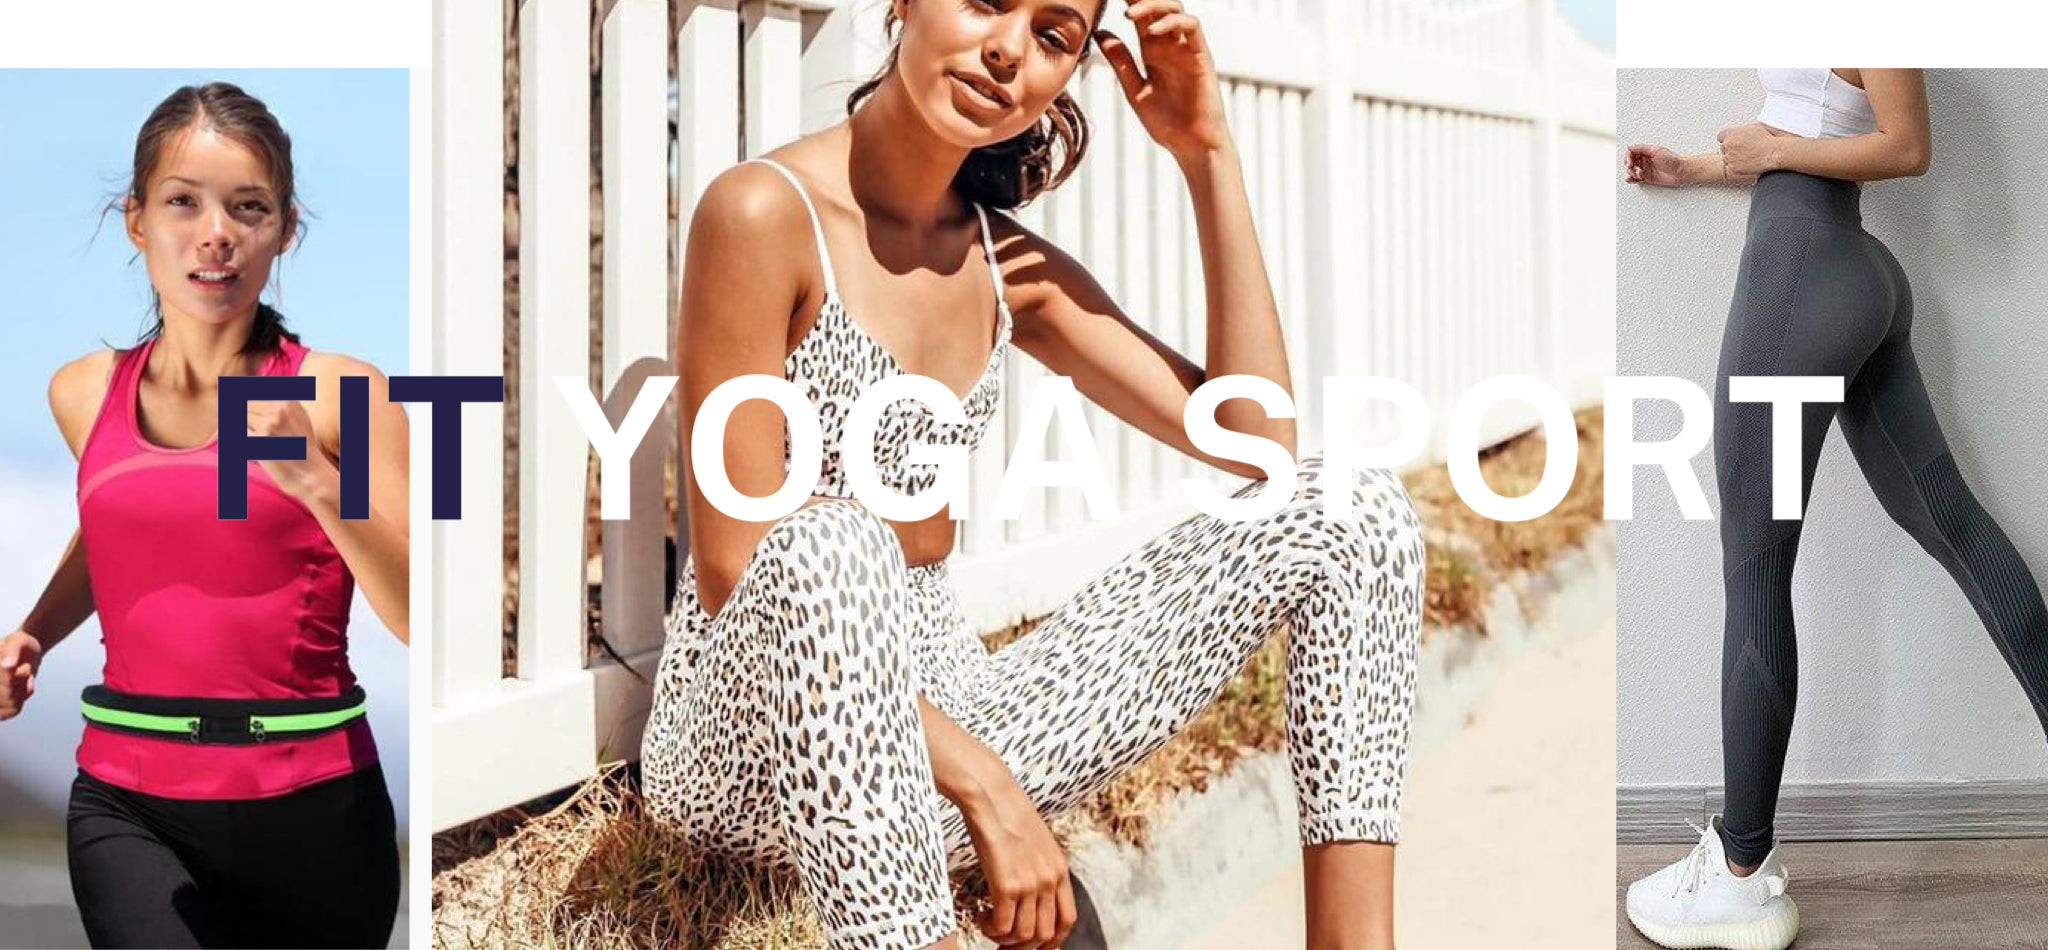 morningSOCIAL | Fit Yoga Sports Collection | Thai Apparel and Home Decor Retail Shopping